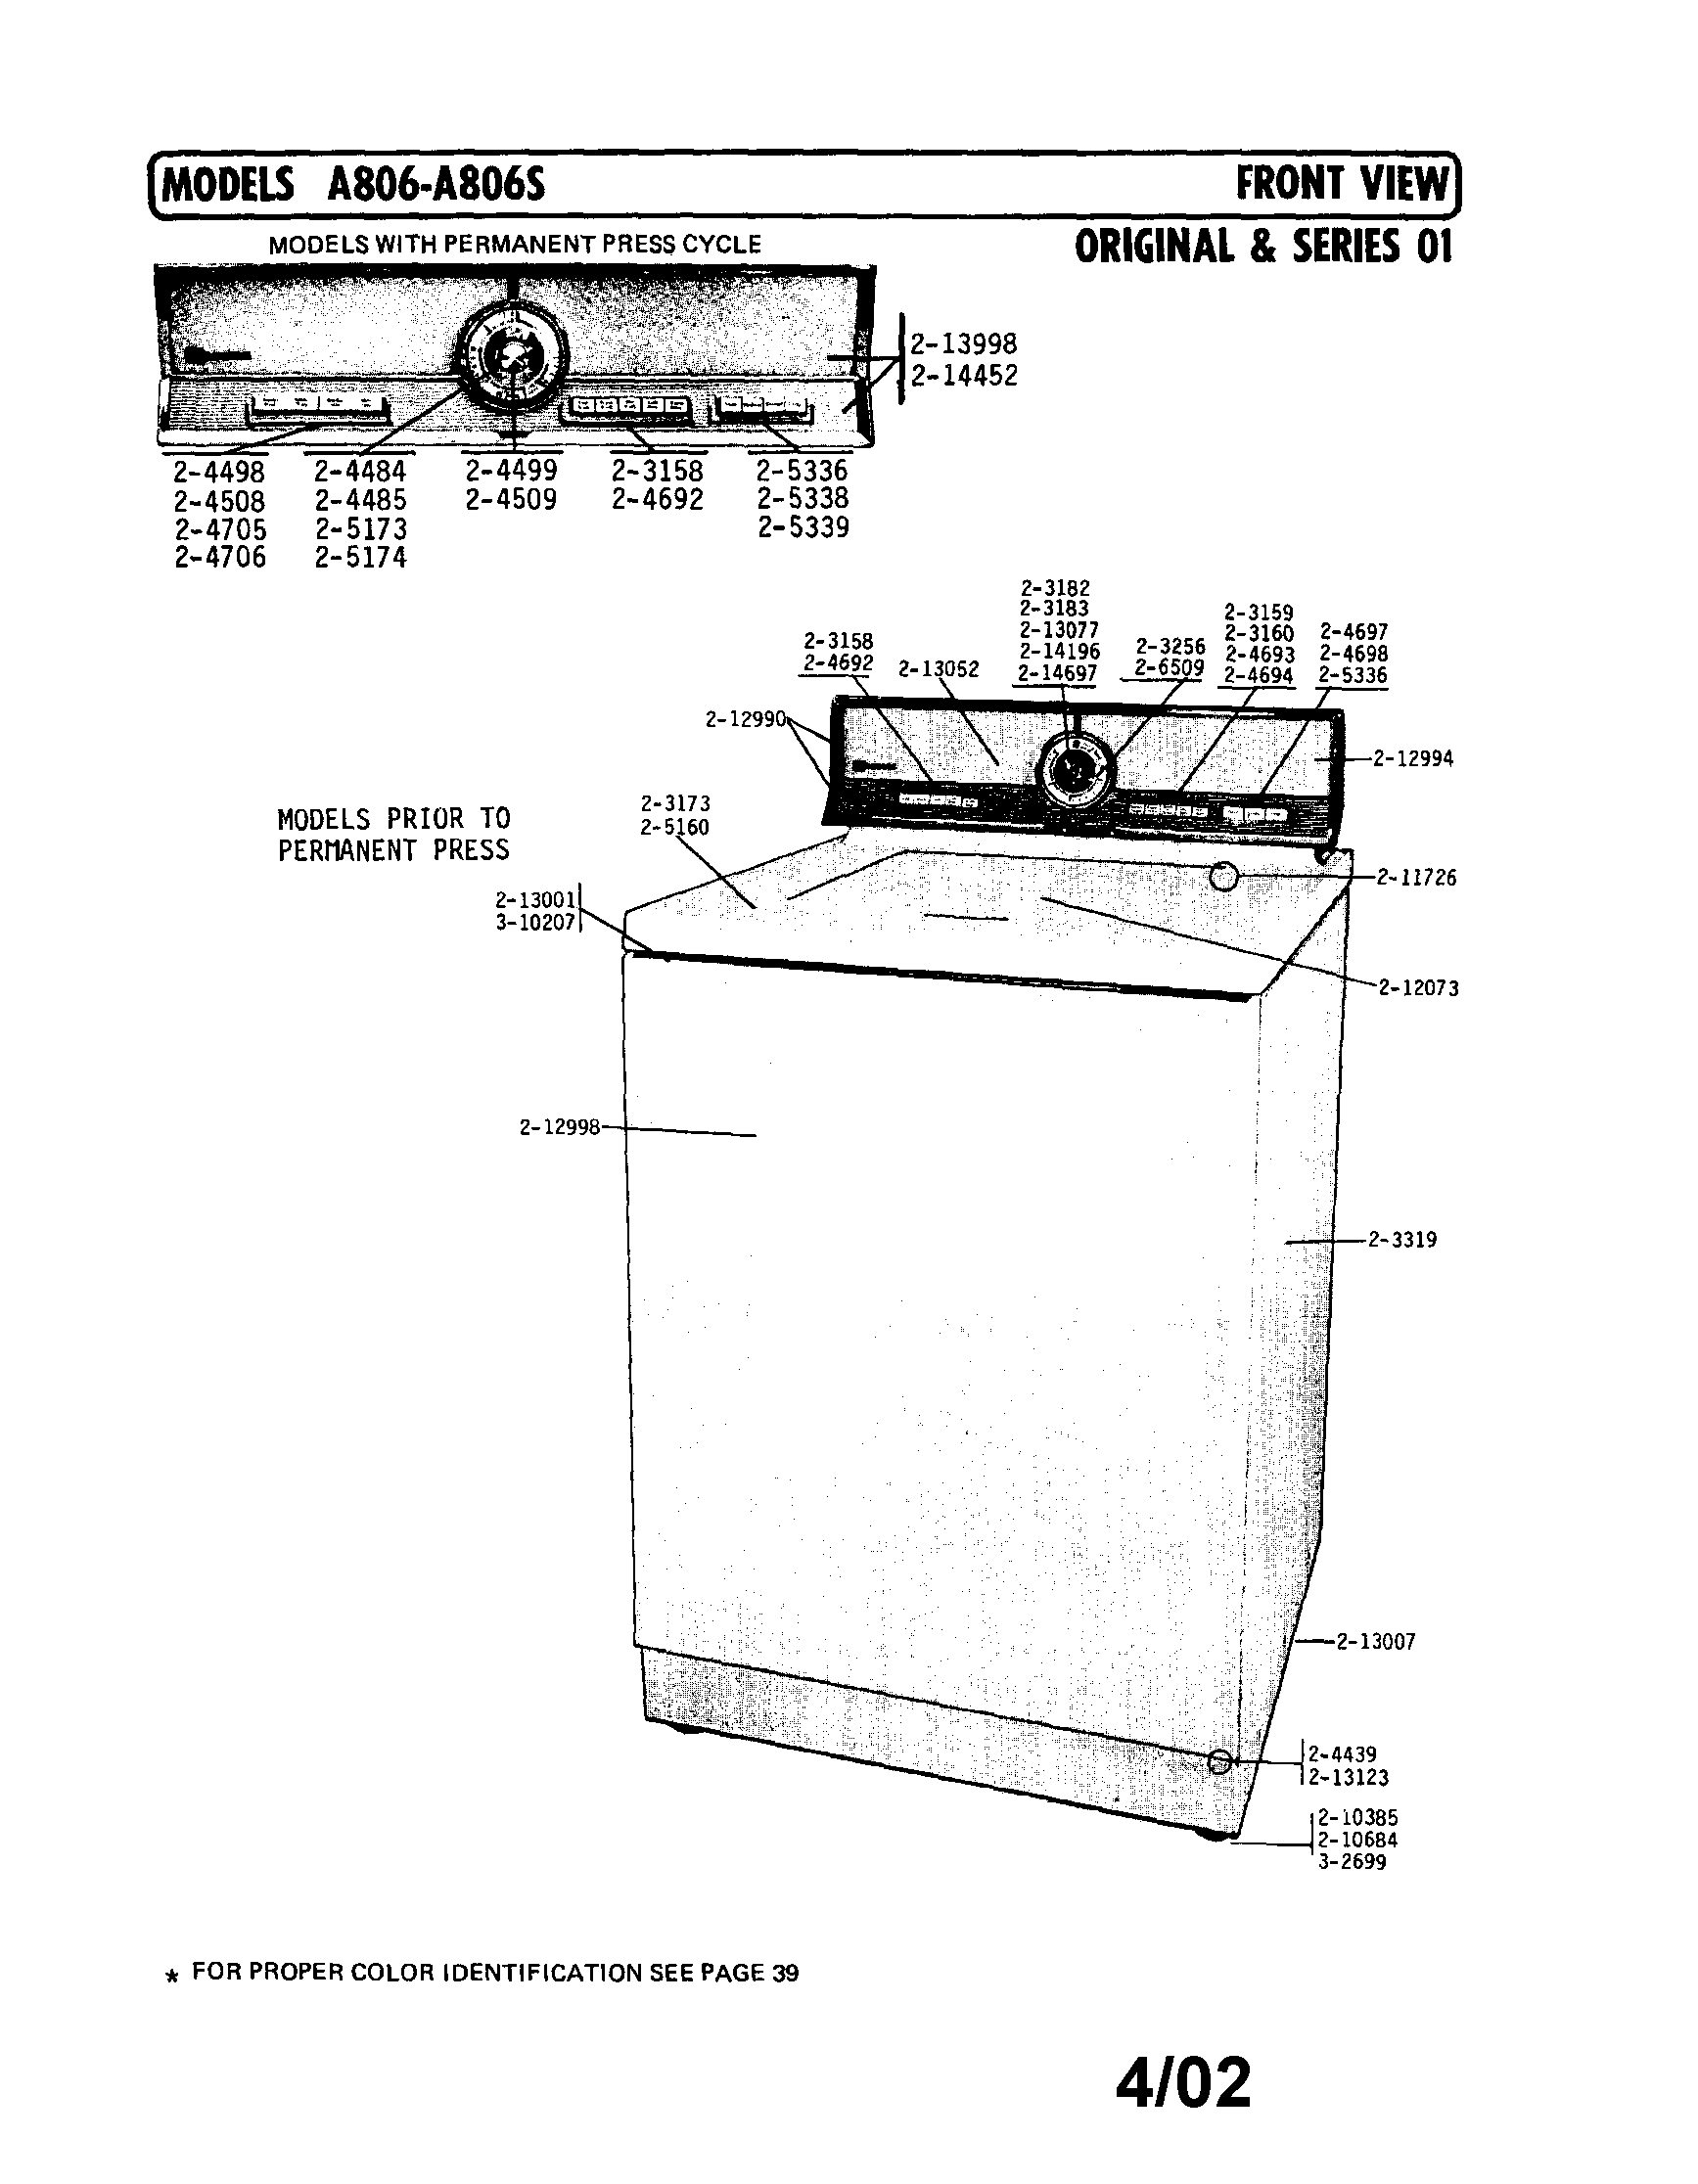 hight resolution of a806 washer front view series 1 parts diagram